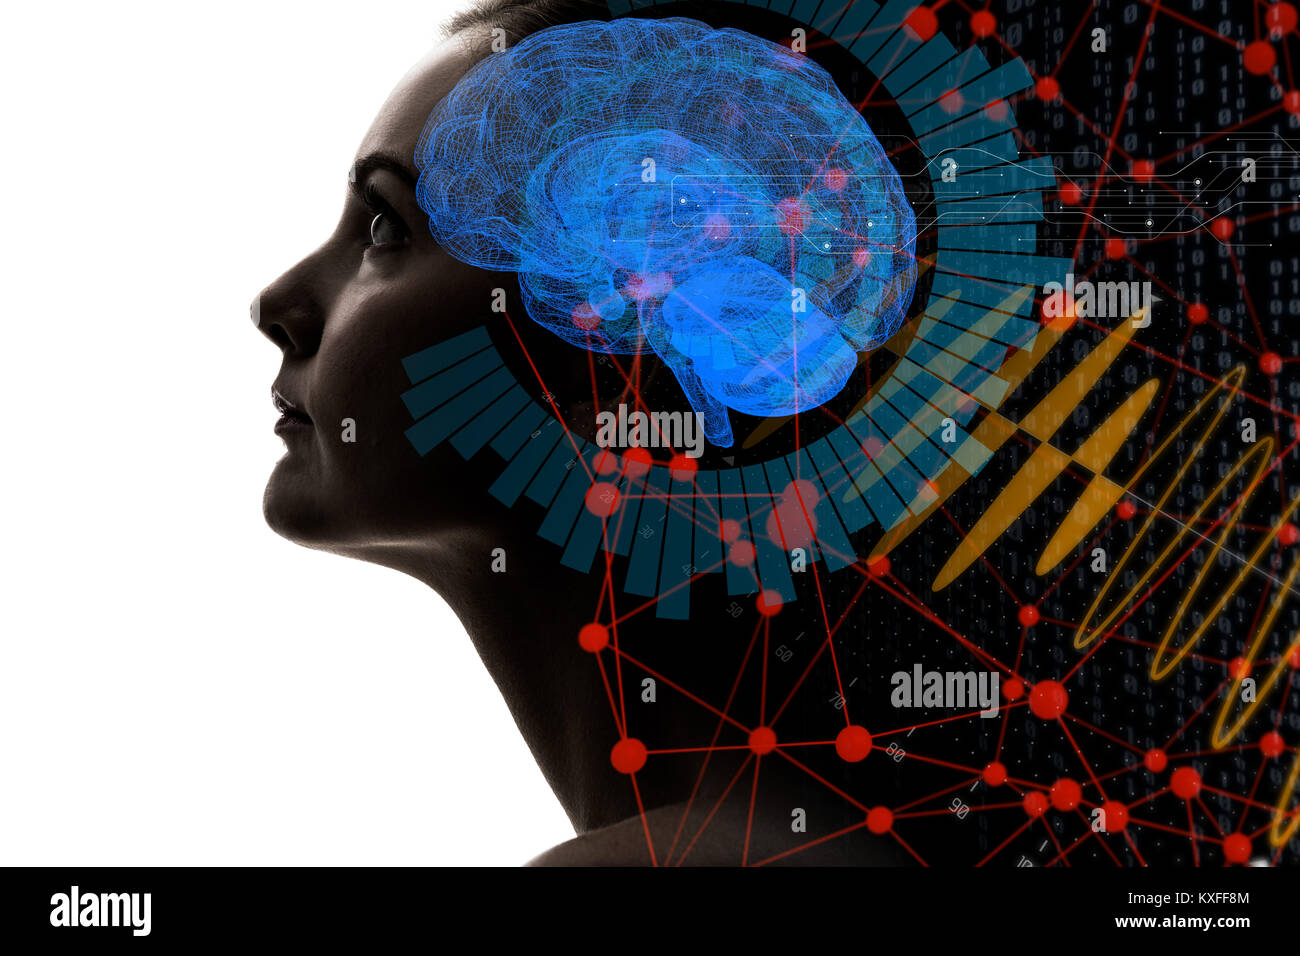 AI(Artificial Intelligence) concept. 3D rendering. - Stock Image